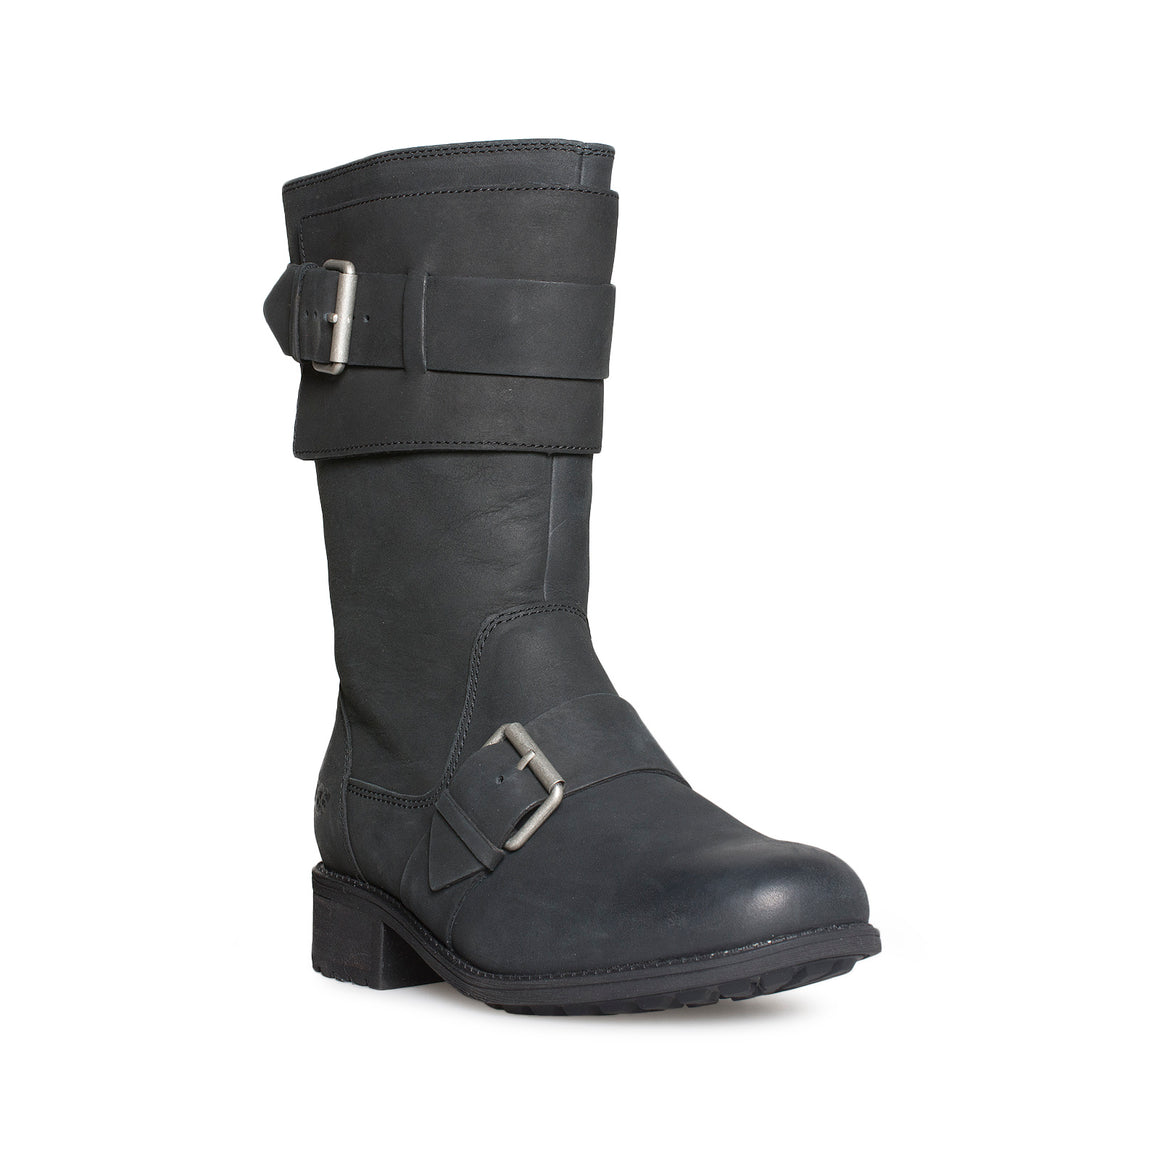 UGG Chancey Black Boots - Women's